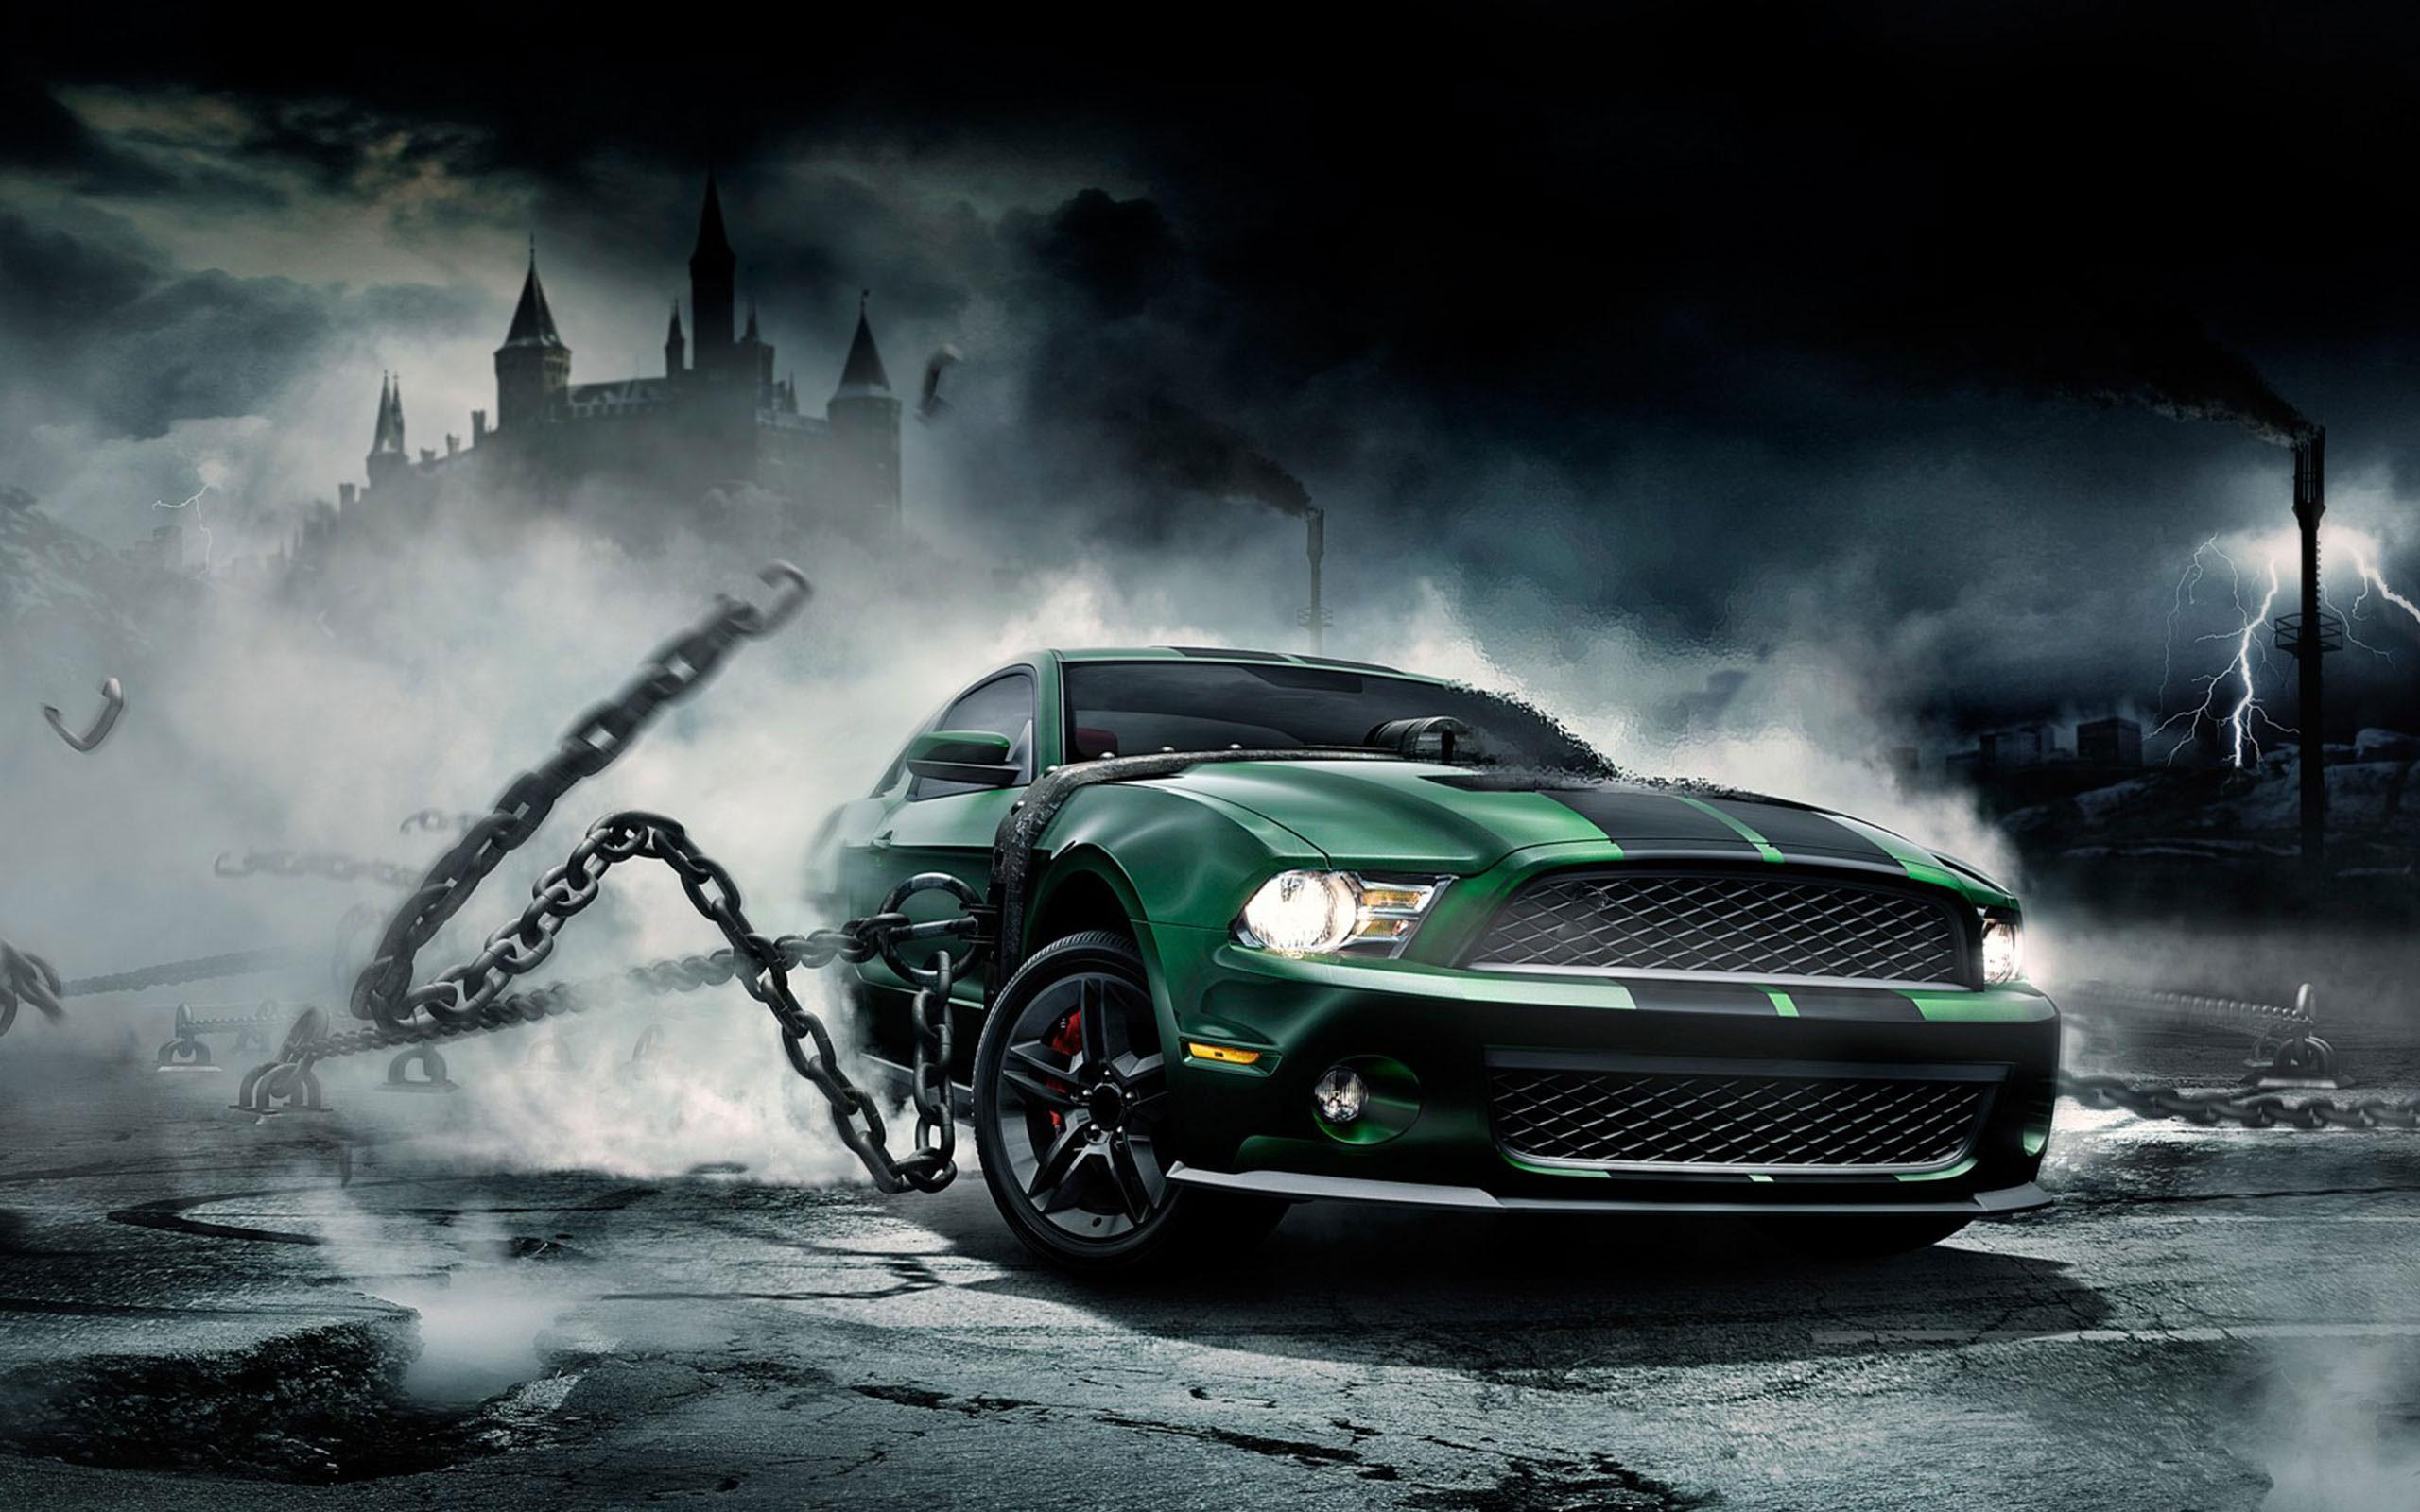 World Of Cars Live Wallpaper For Android Apk Download